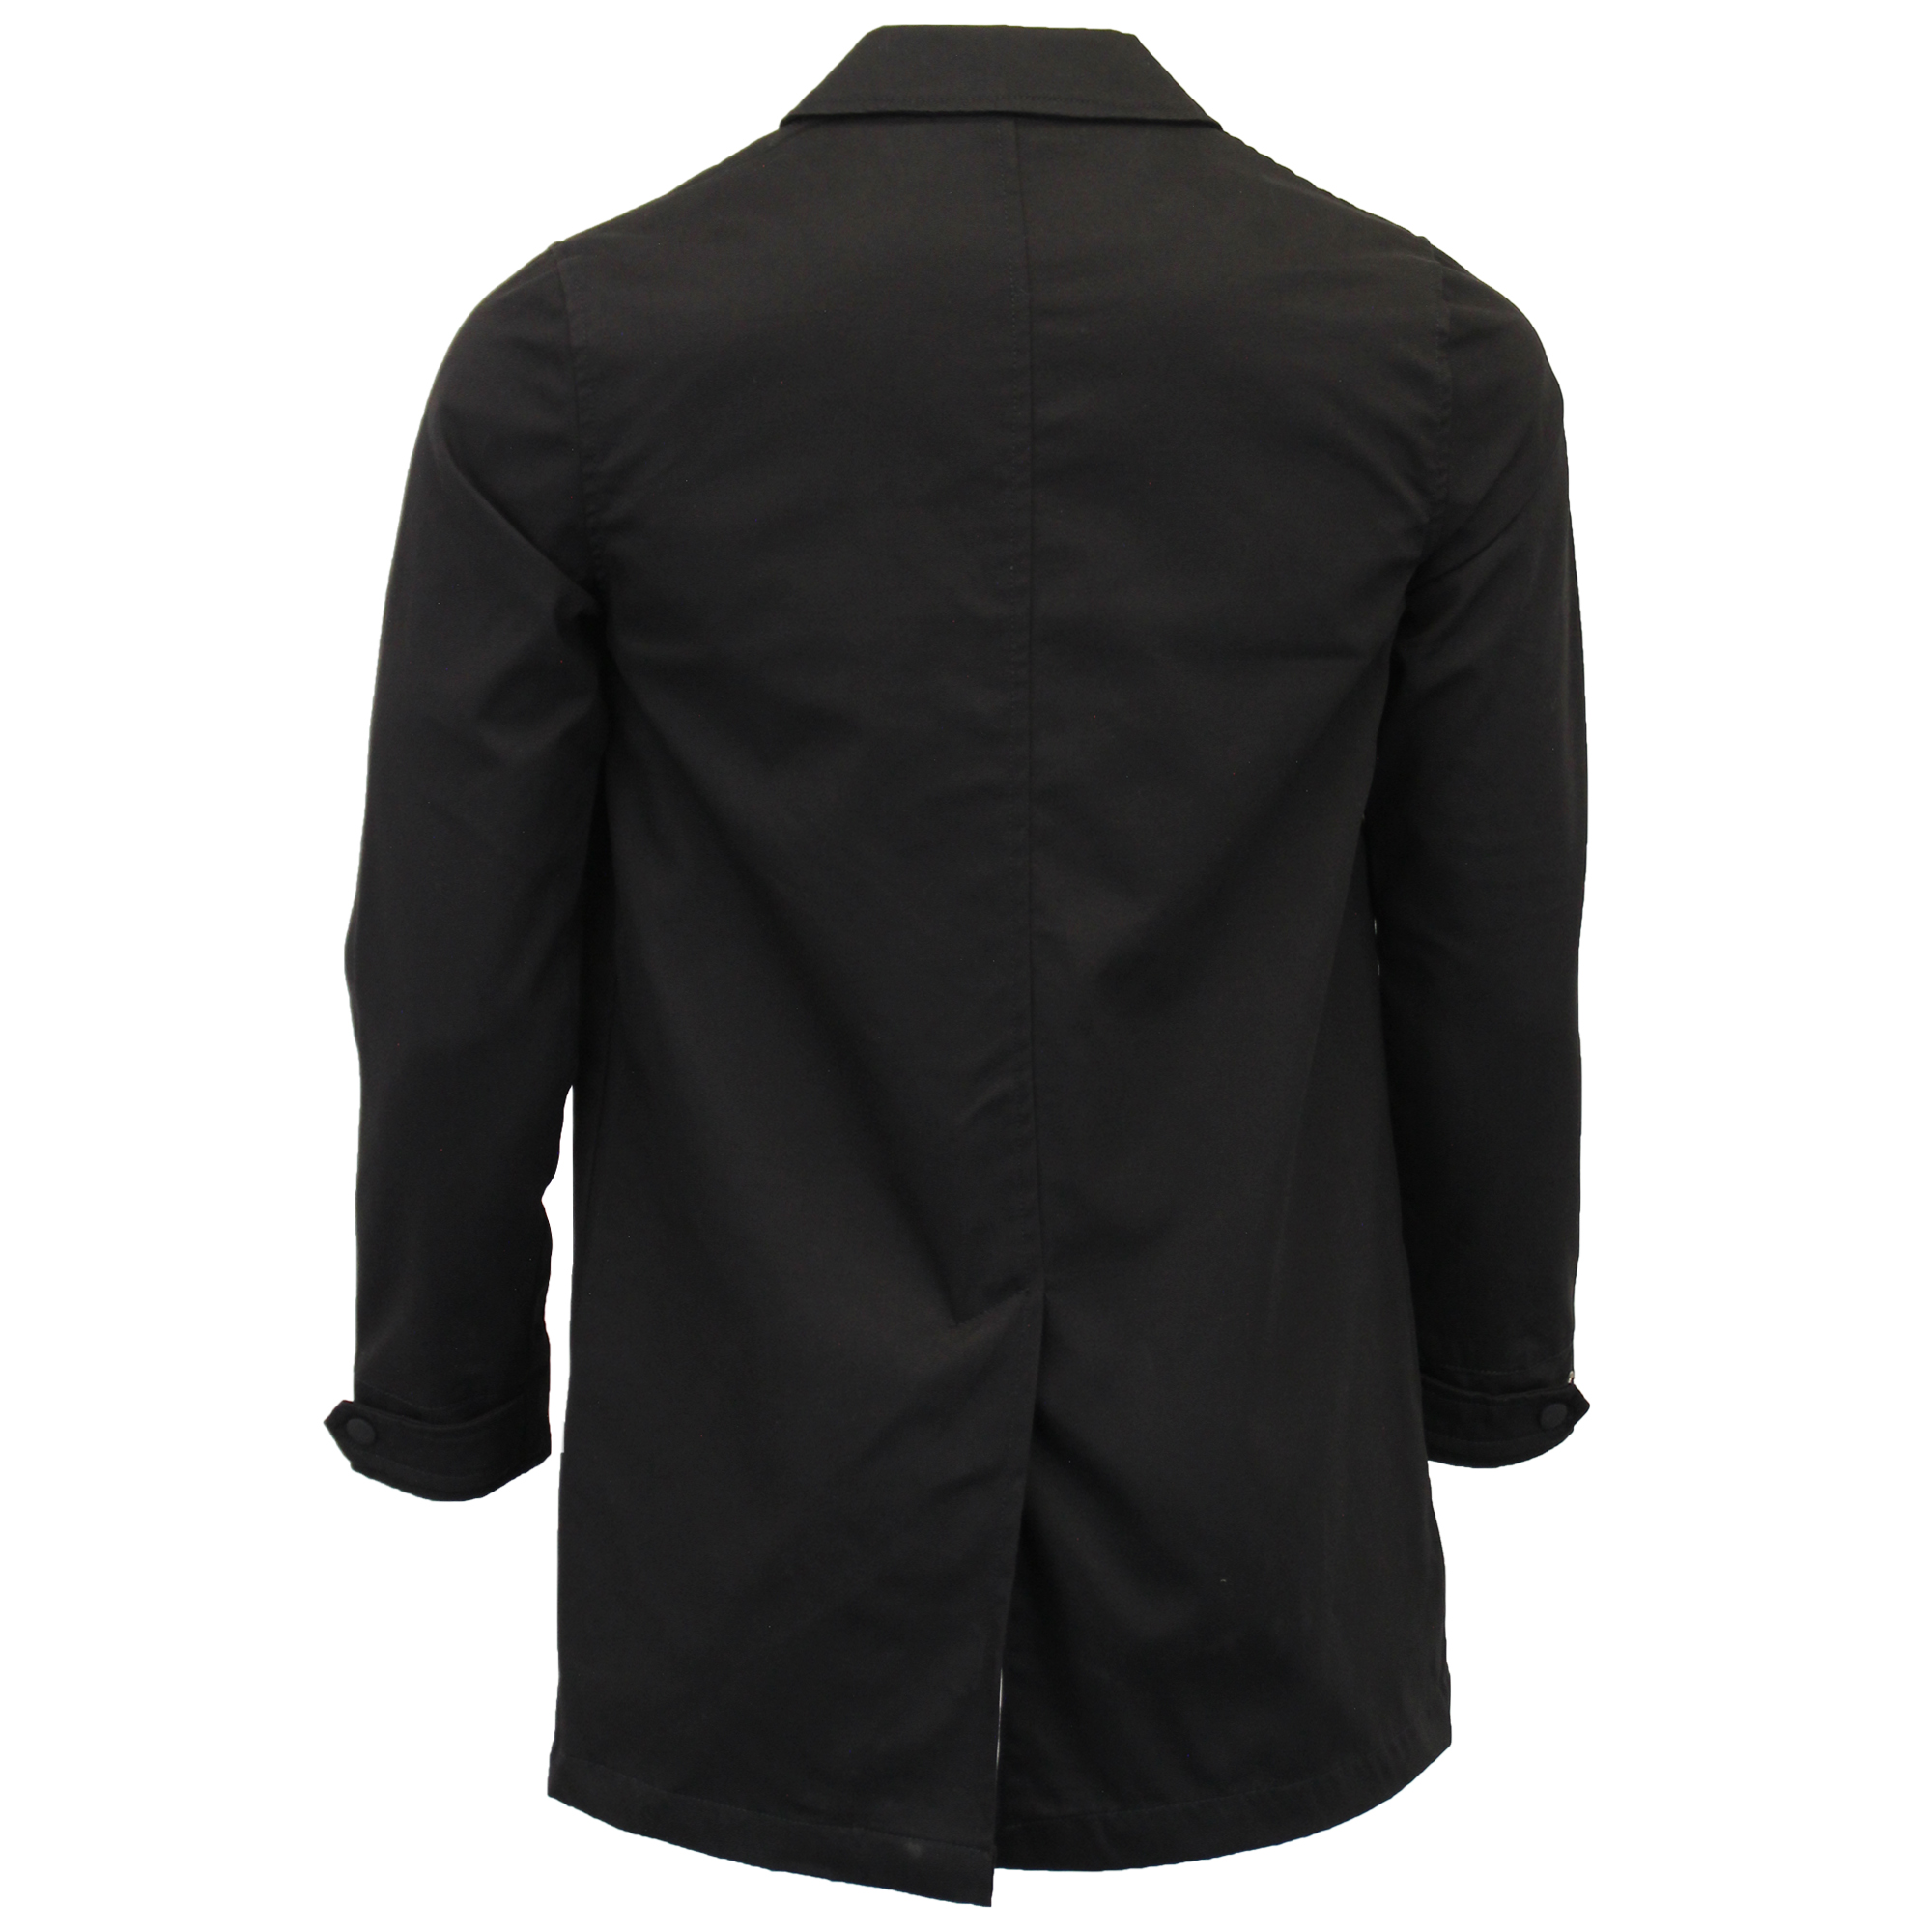 Mens Jacket Brave Soul Mac Trench Coat Process Black Collared Button ... f89775685eef